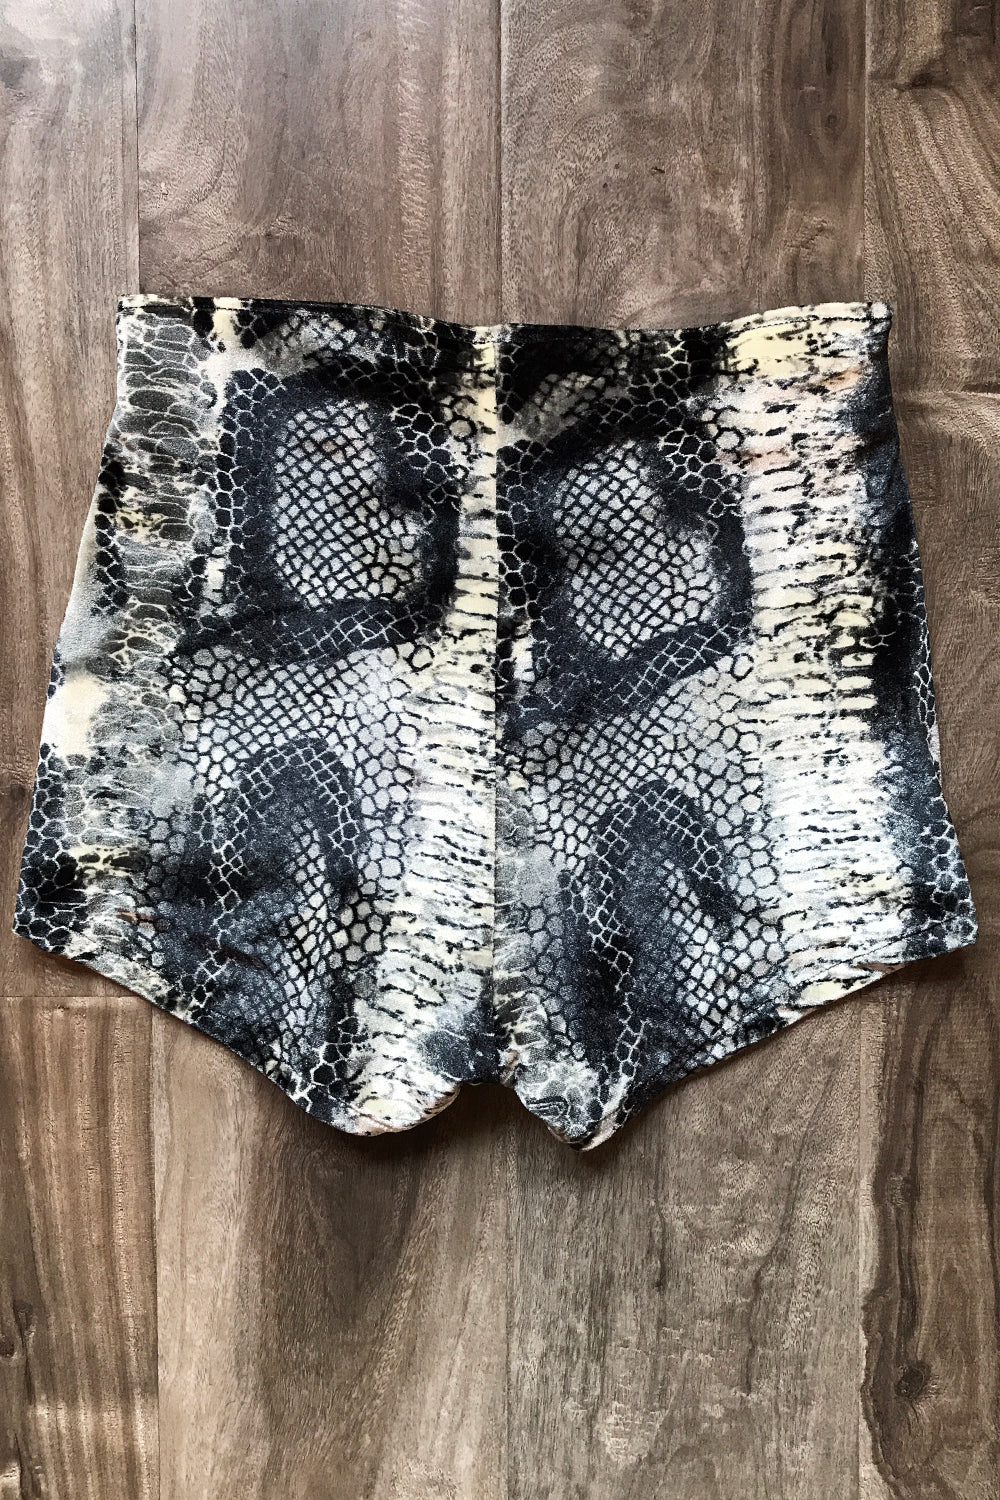 Velvet Grommet Shorts Size XS・Grey Cobra, bottoms, BAD VIBES, BACKBITE